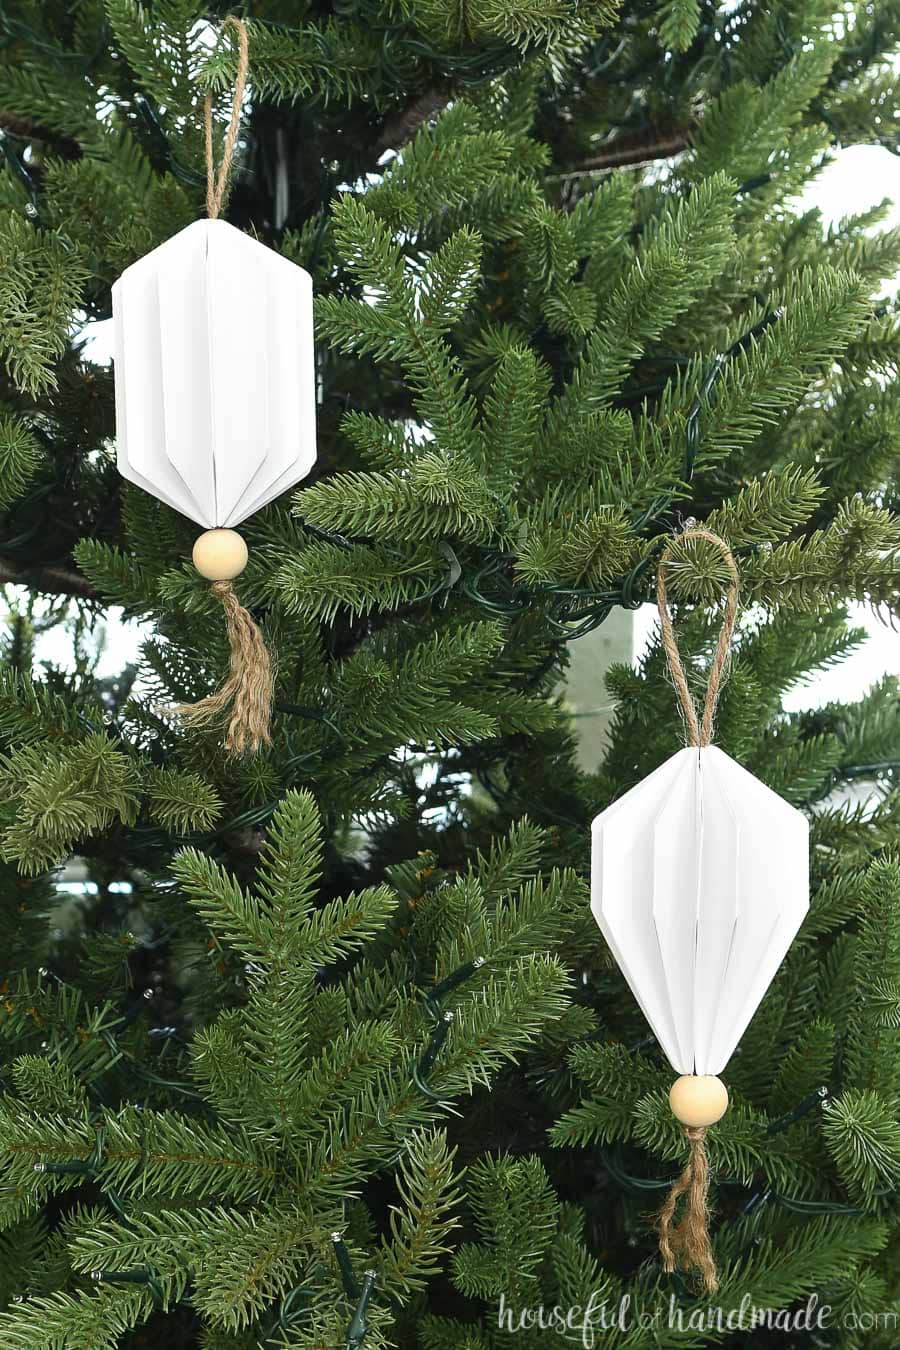 Two jewel shaped Christmas ornaments made from paper hanging on a Christmas tree.